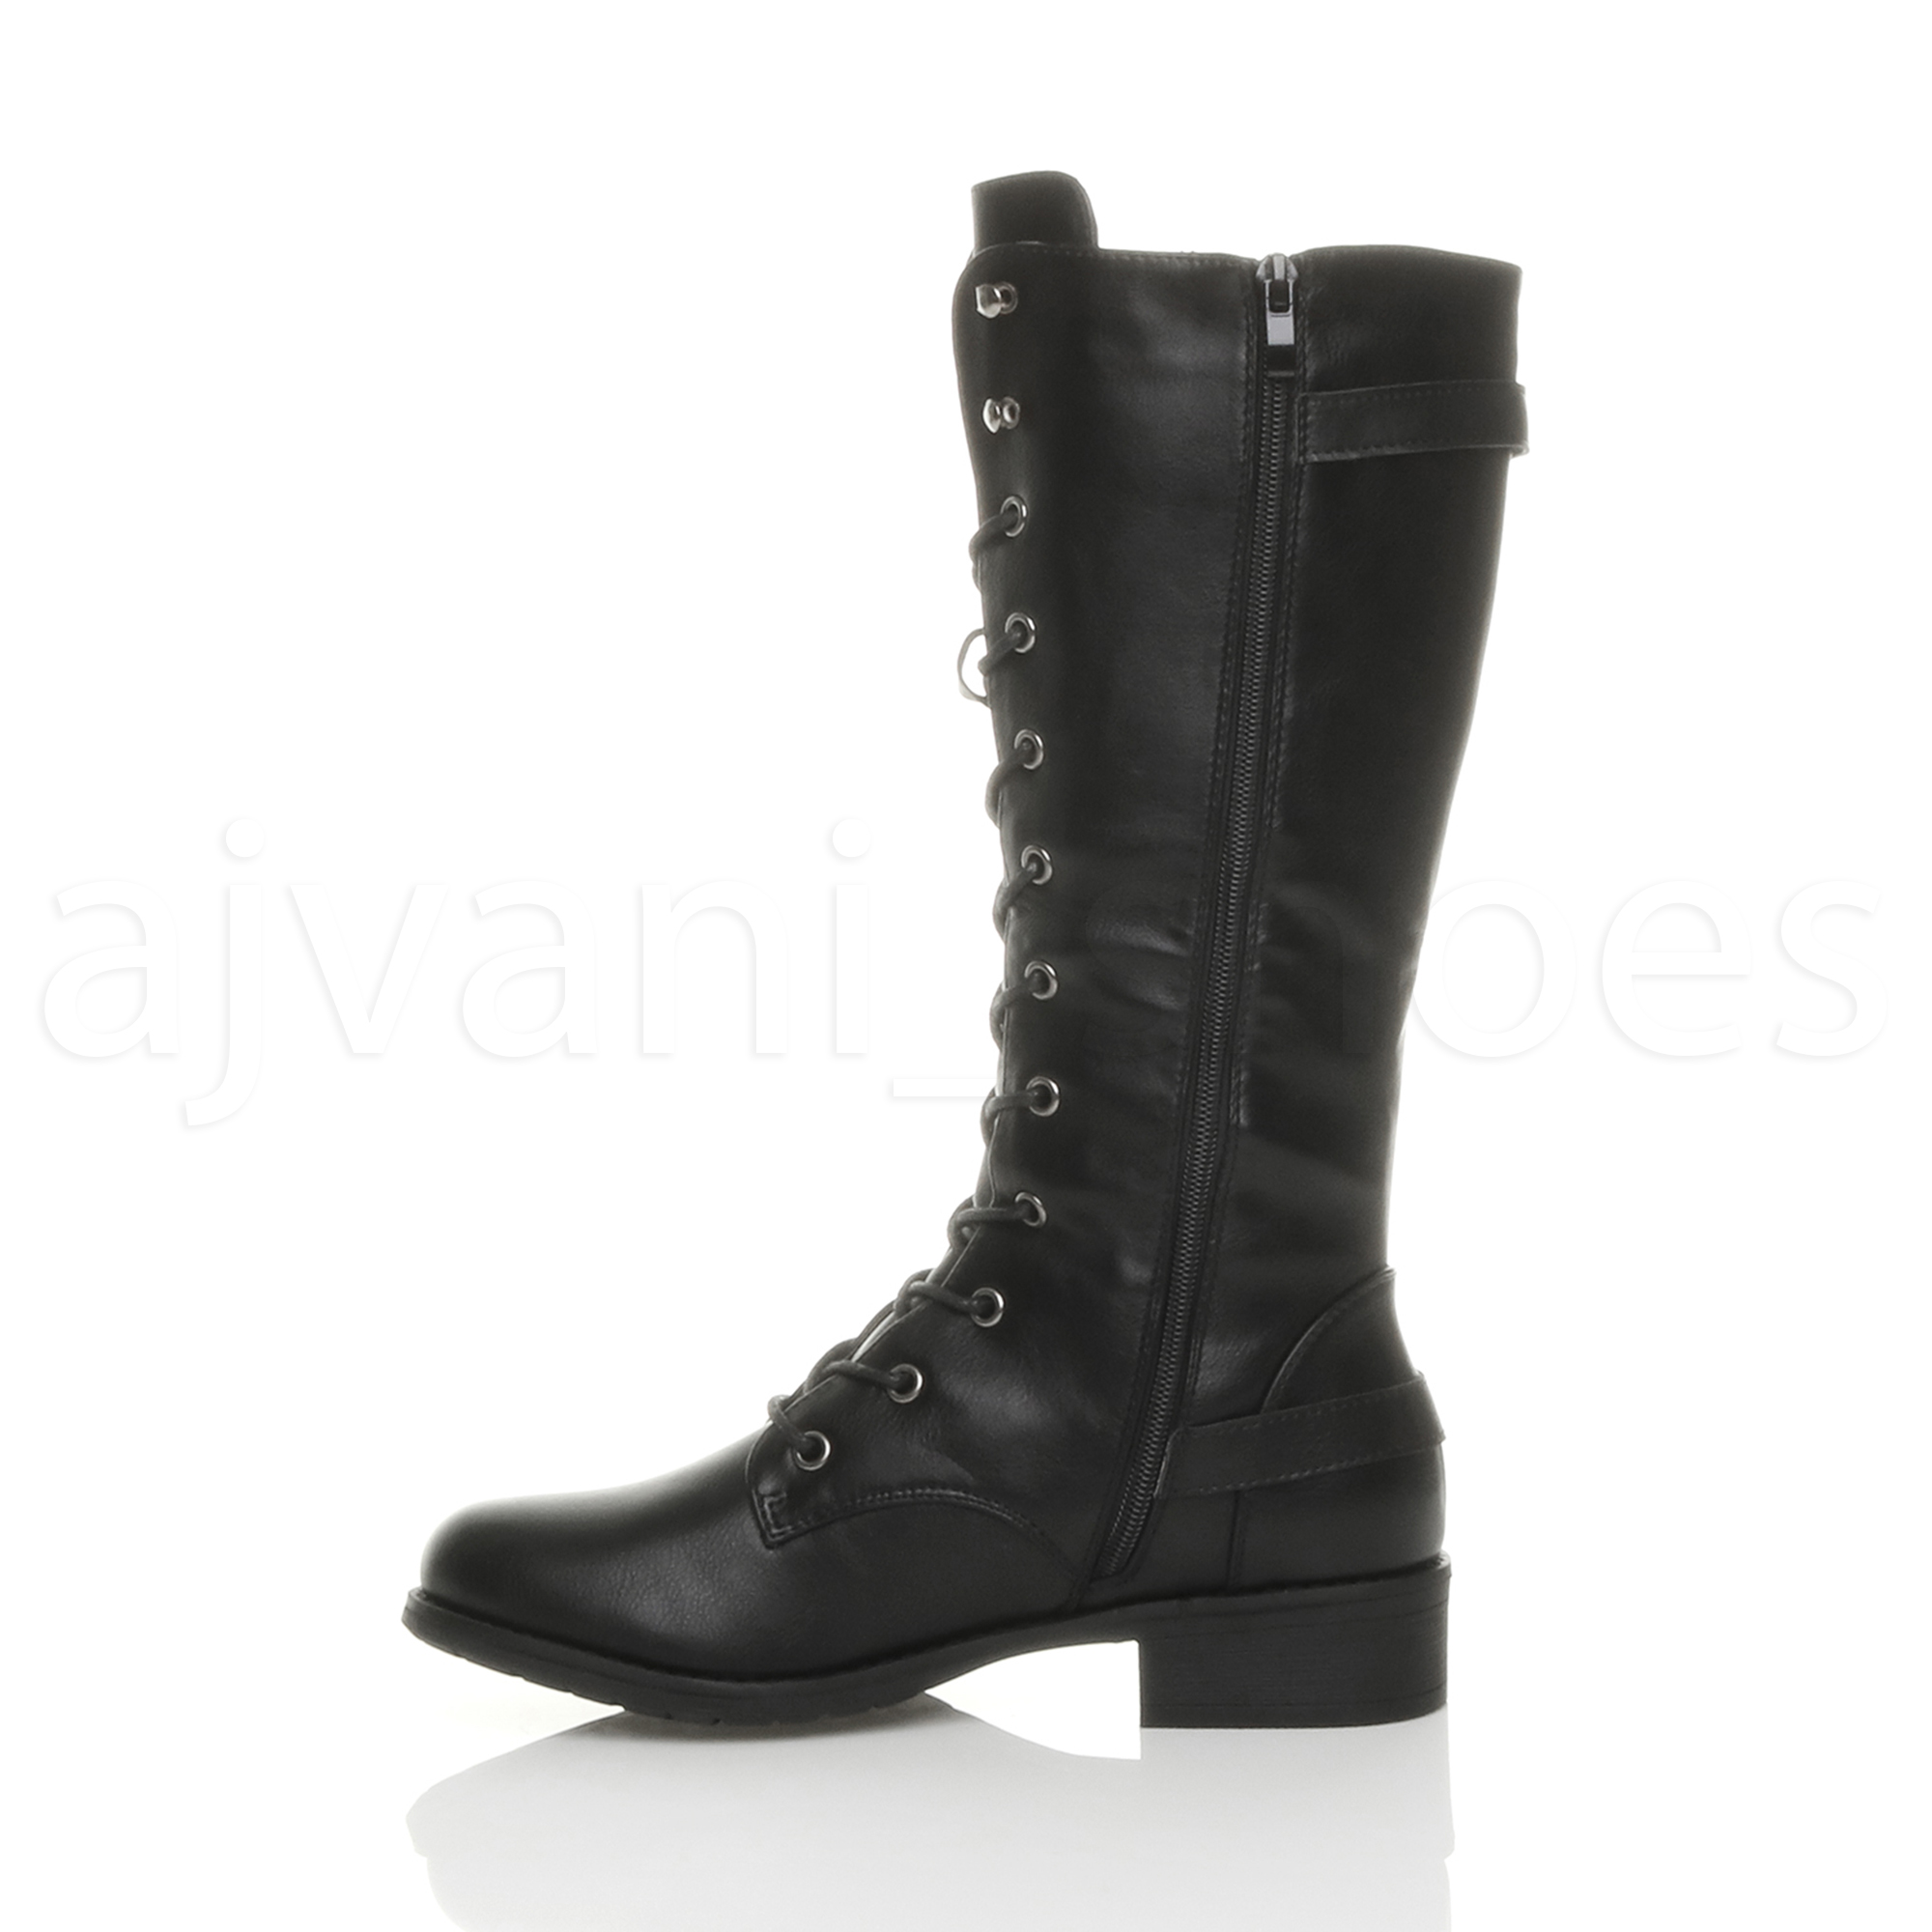 WOMENS-LADIES-LOW-HEEL-LACE-UP-ZIP-BIKER-ARMY-COMBAT-MILITARY-CALF-BOOTS-SIZE